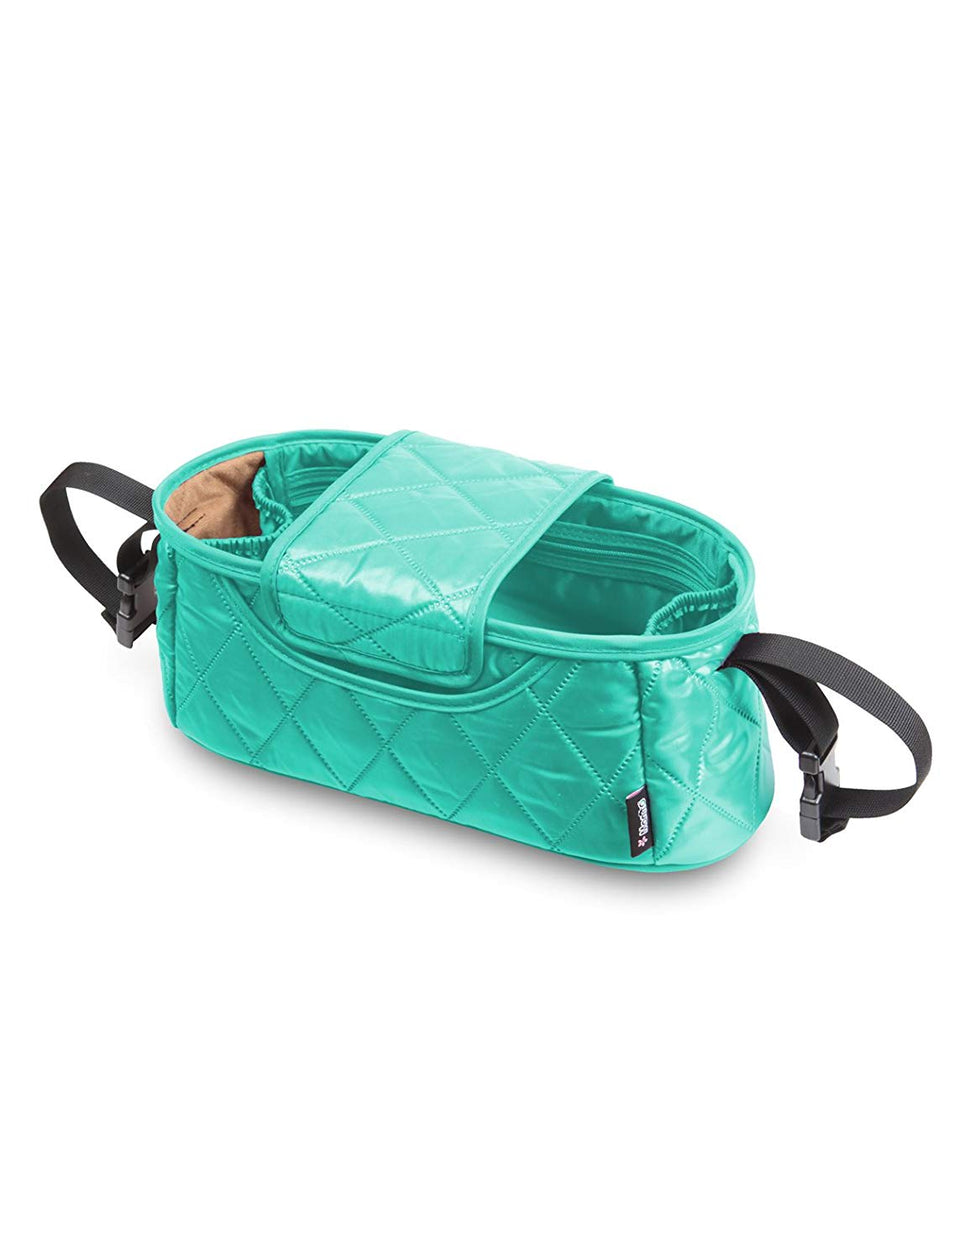 Handy Stroller Organizer (Blue/Diamond)